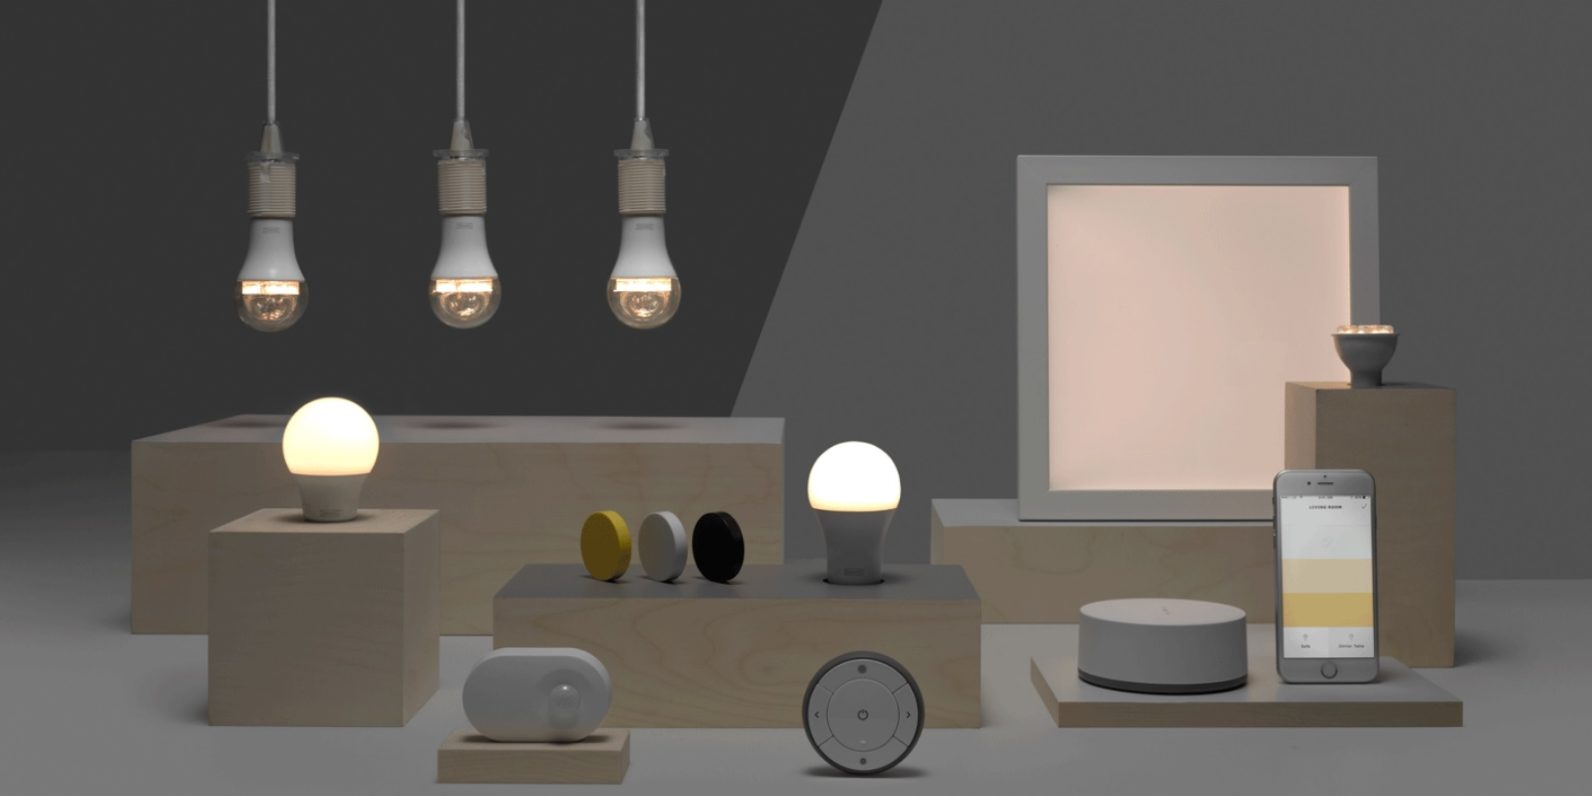 ikea launches homekit support for tr dfri smart lighting system macrumors. Black Bedroom Furniture Sets. Home Design Ideas